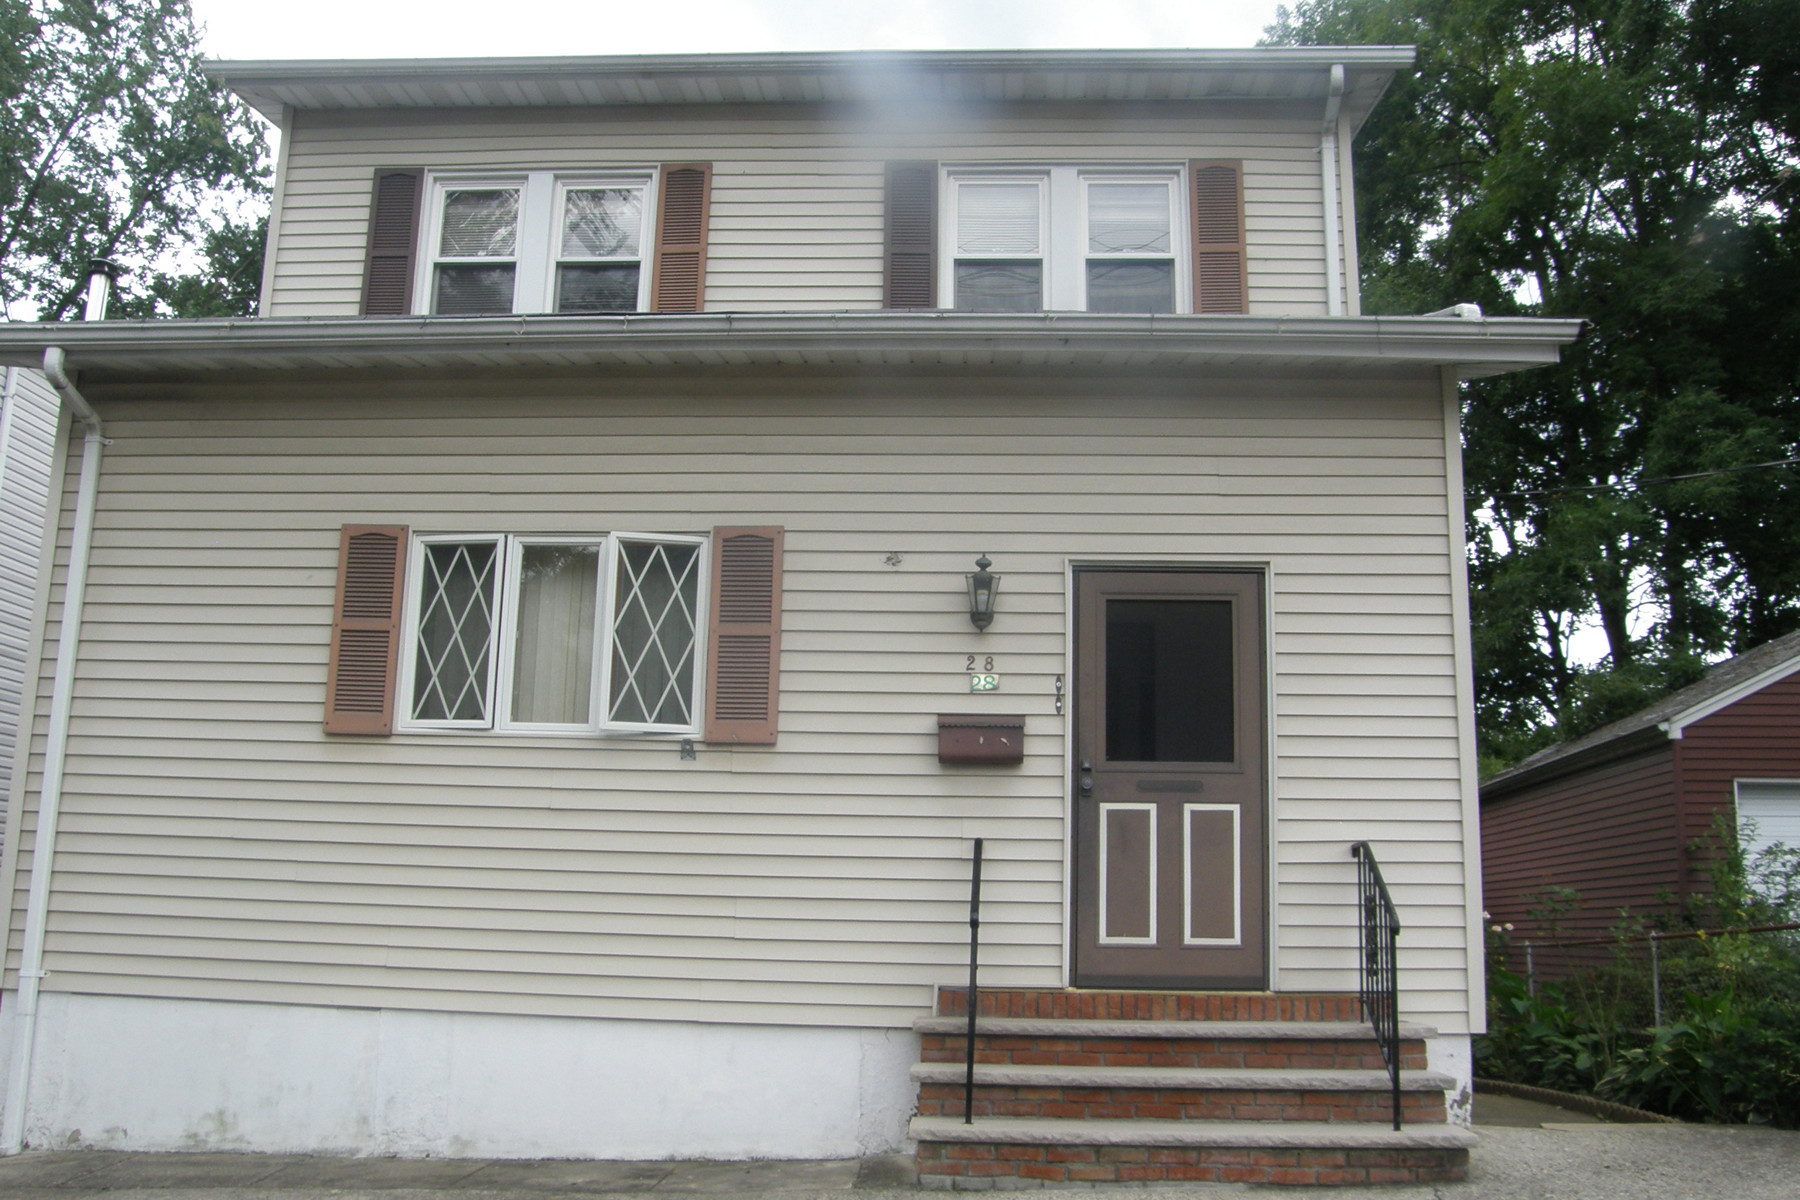 Multi-Family Homes for Rent at Great Opportunity! 28 W Grove St 2, Bogota, New Jersey 07603 United States